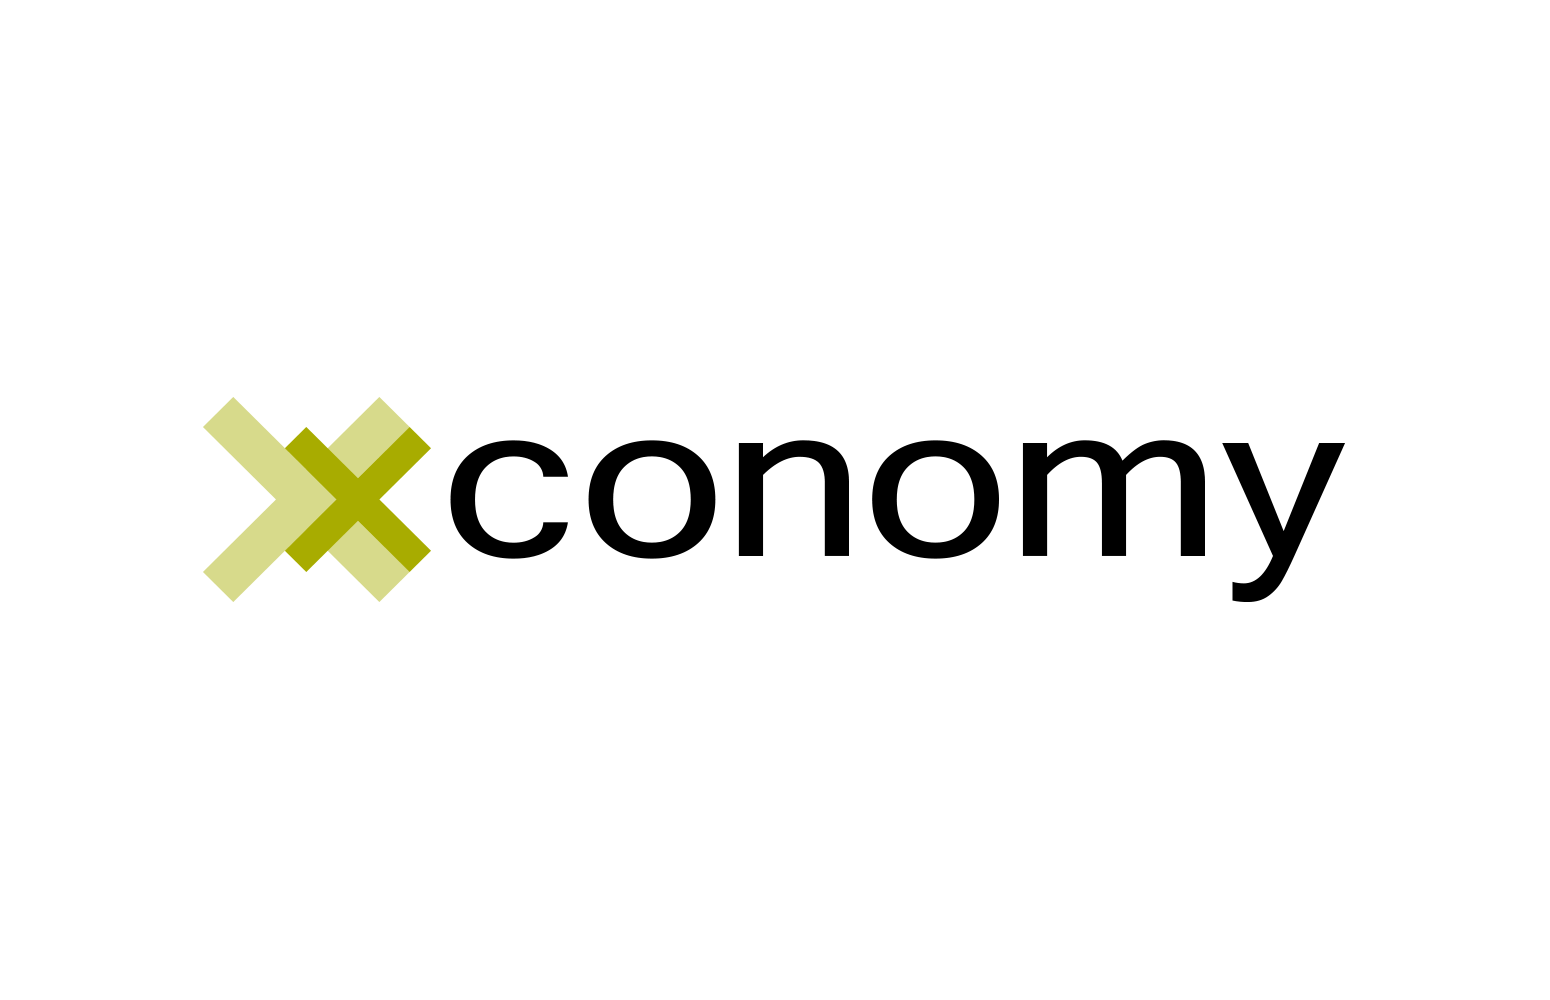 news-stand-alone-xconomy-logo-c.png